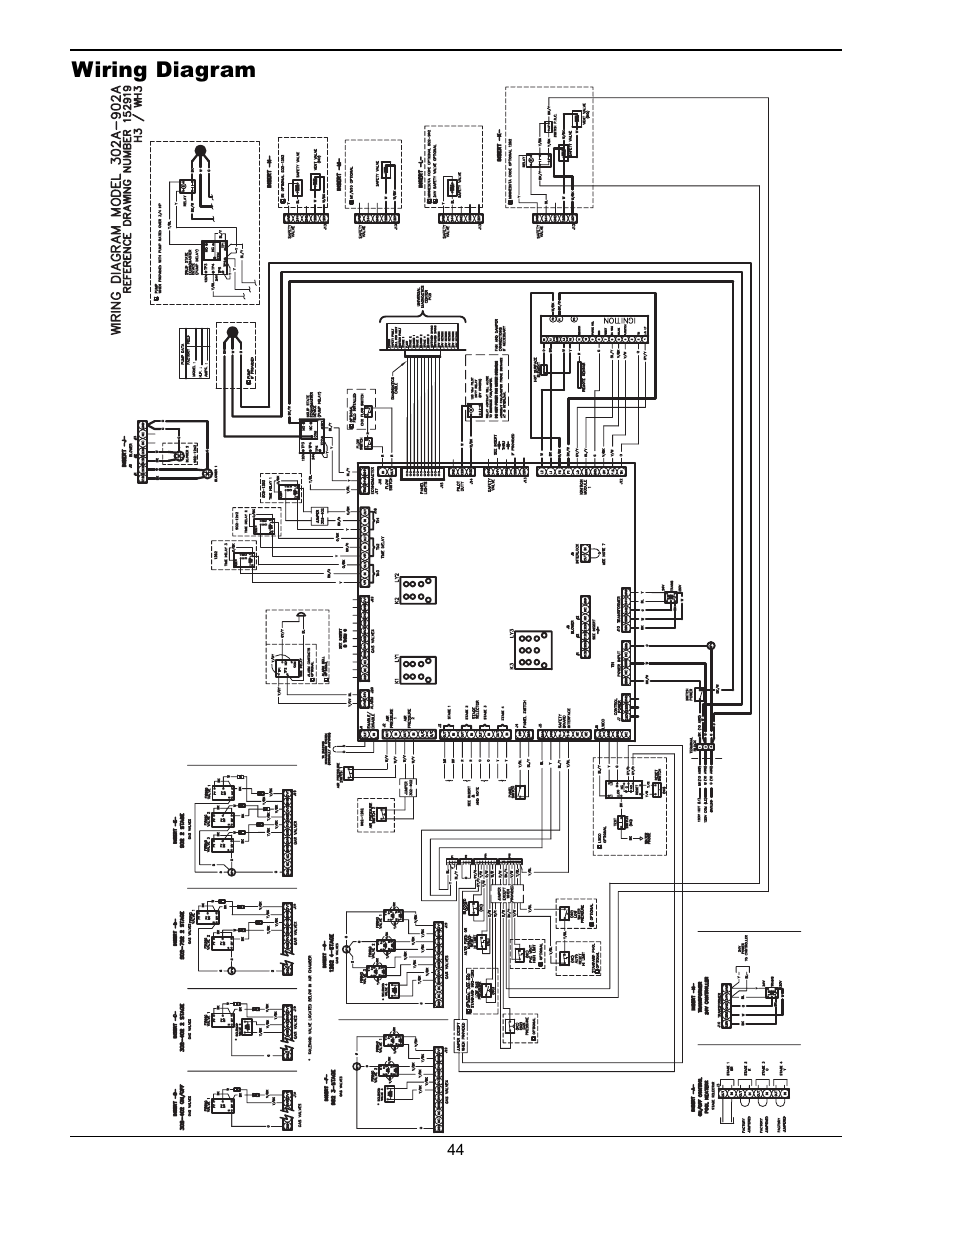 Raypak Boiler Wiring Diagram Detailed Schematic Diagrams Reliance Water Heater Trusted Manuals